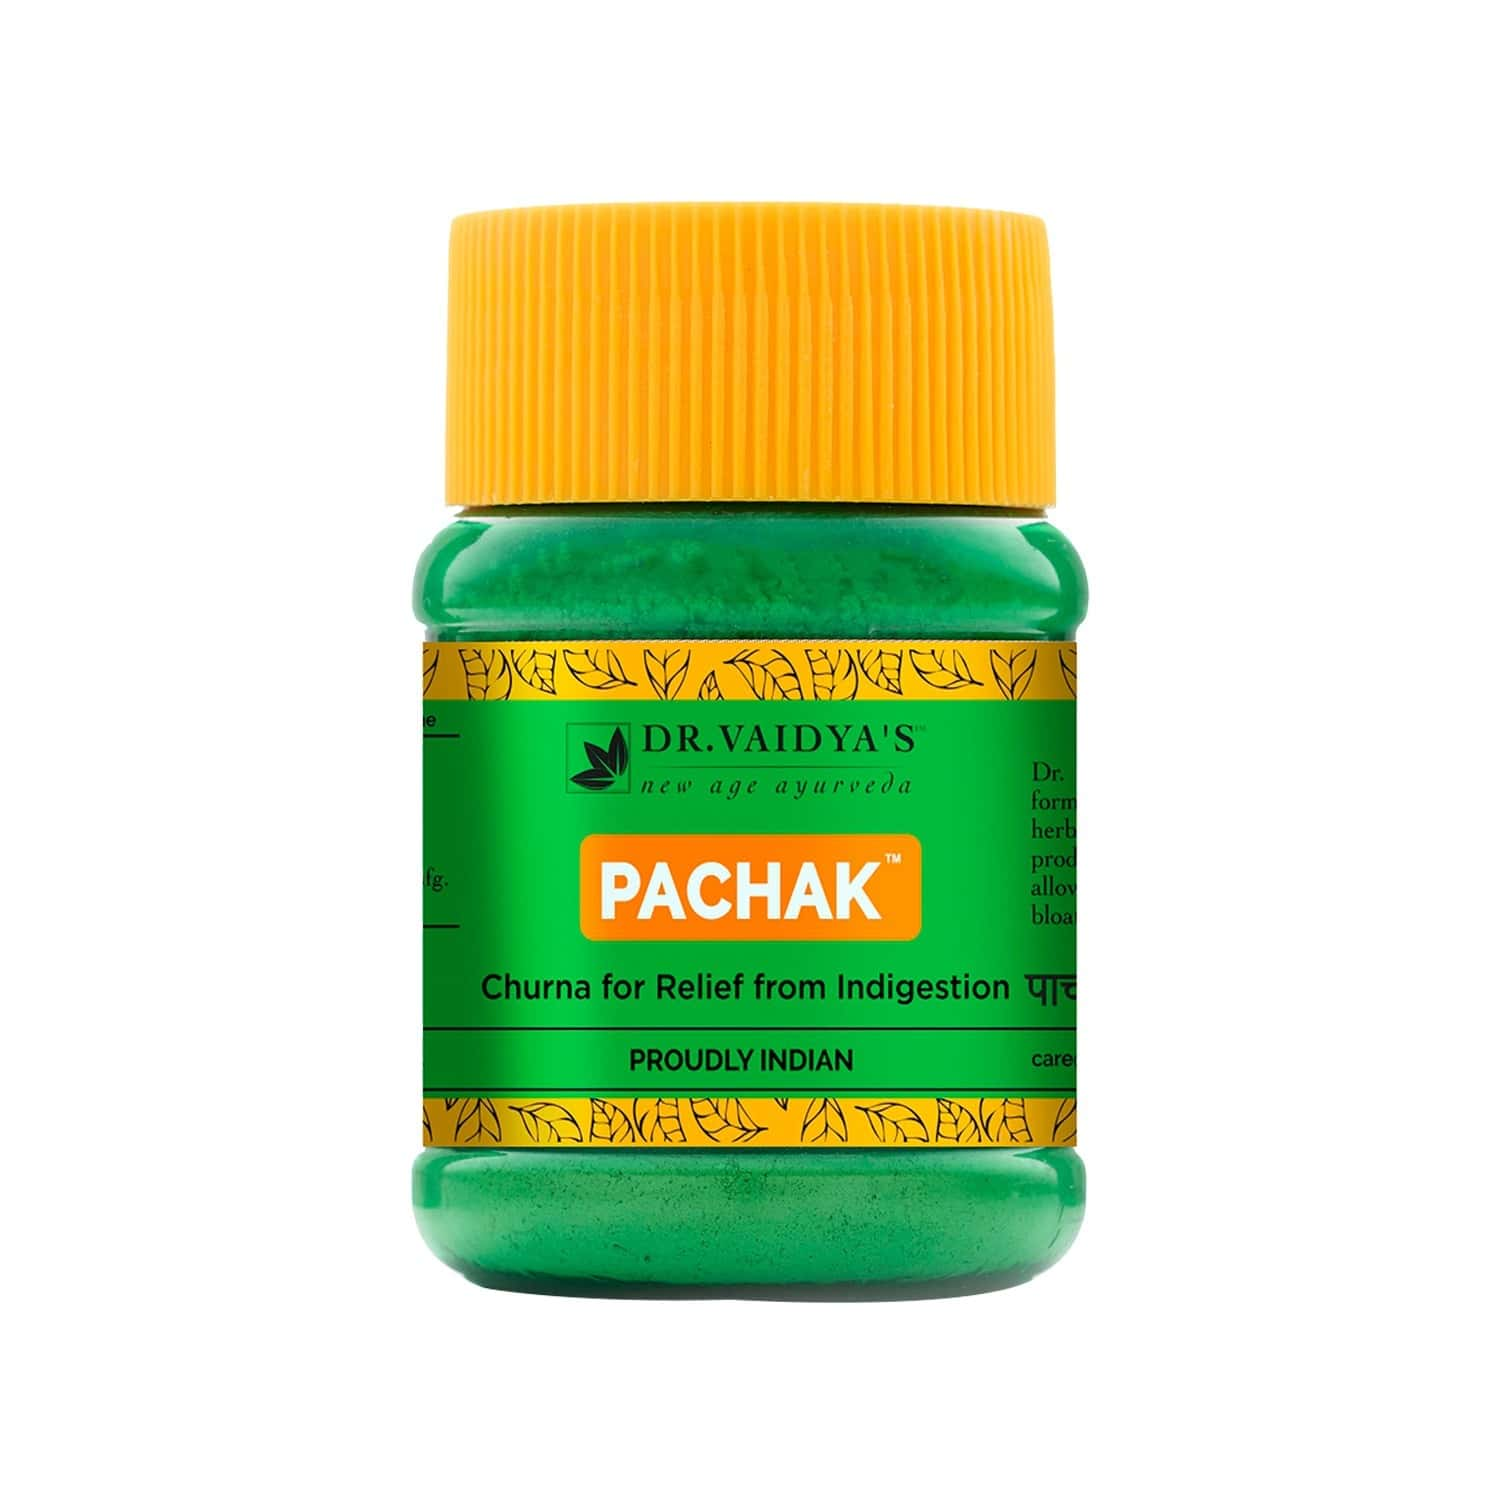 Dr. Vaidya's Pachak Churna Pack Of 2 (100 Gms) Medicine For Indigestion)